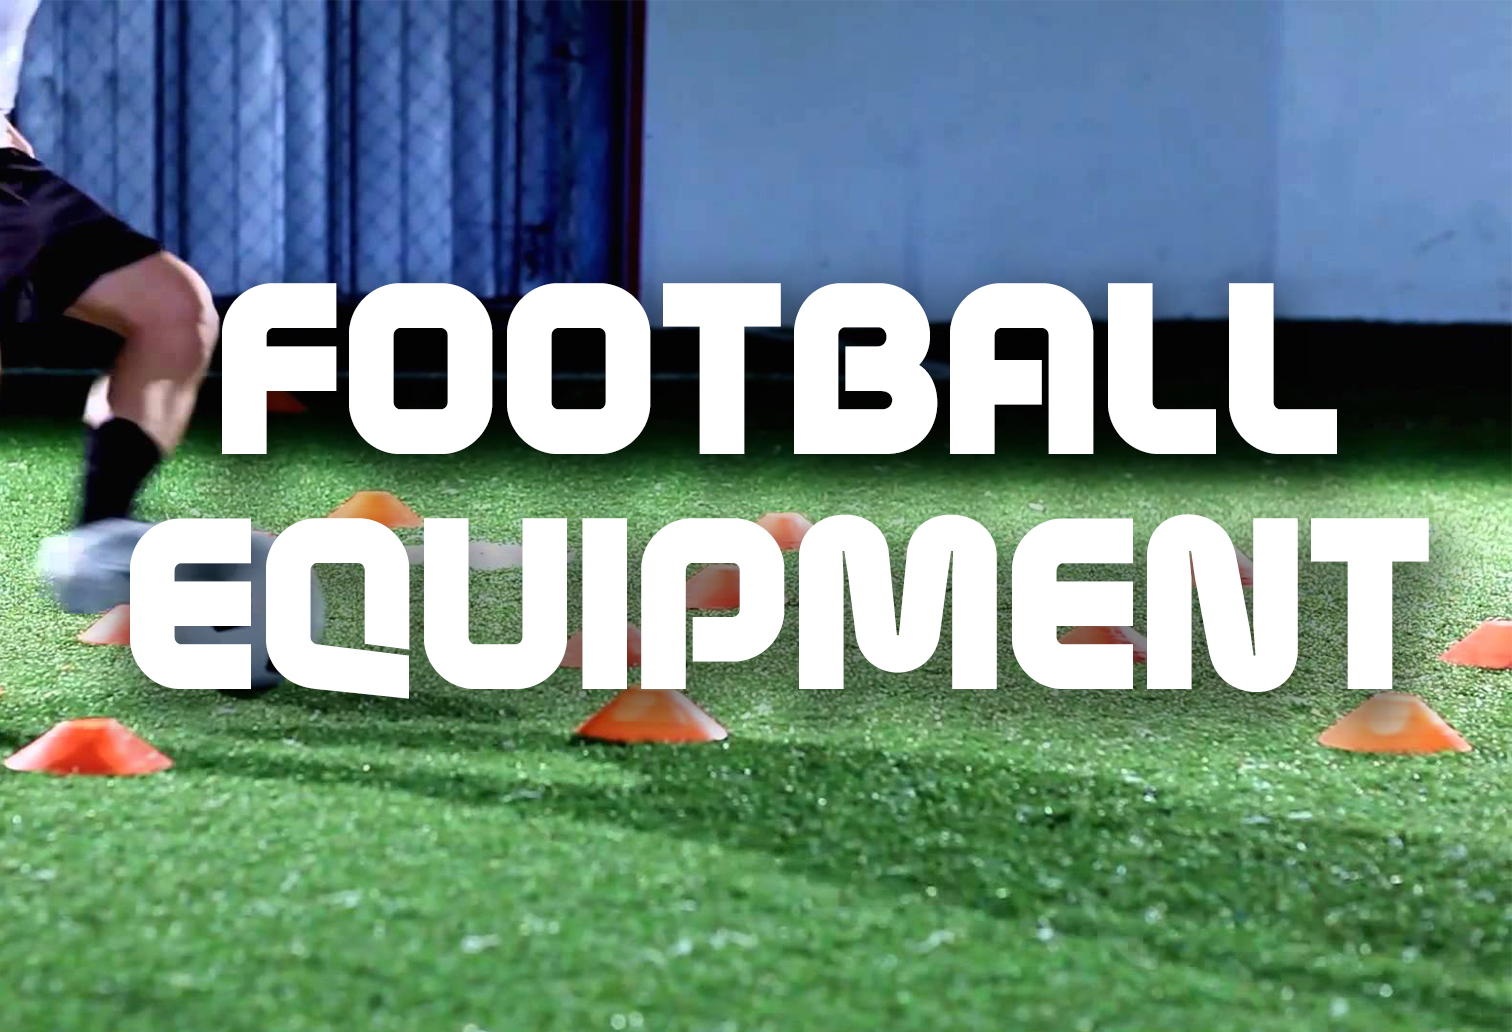 football-equipment1.jpg